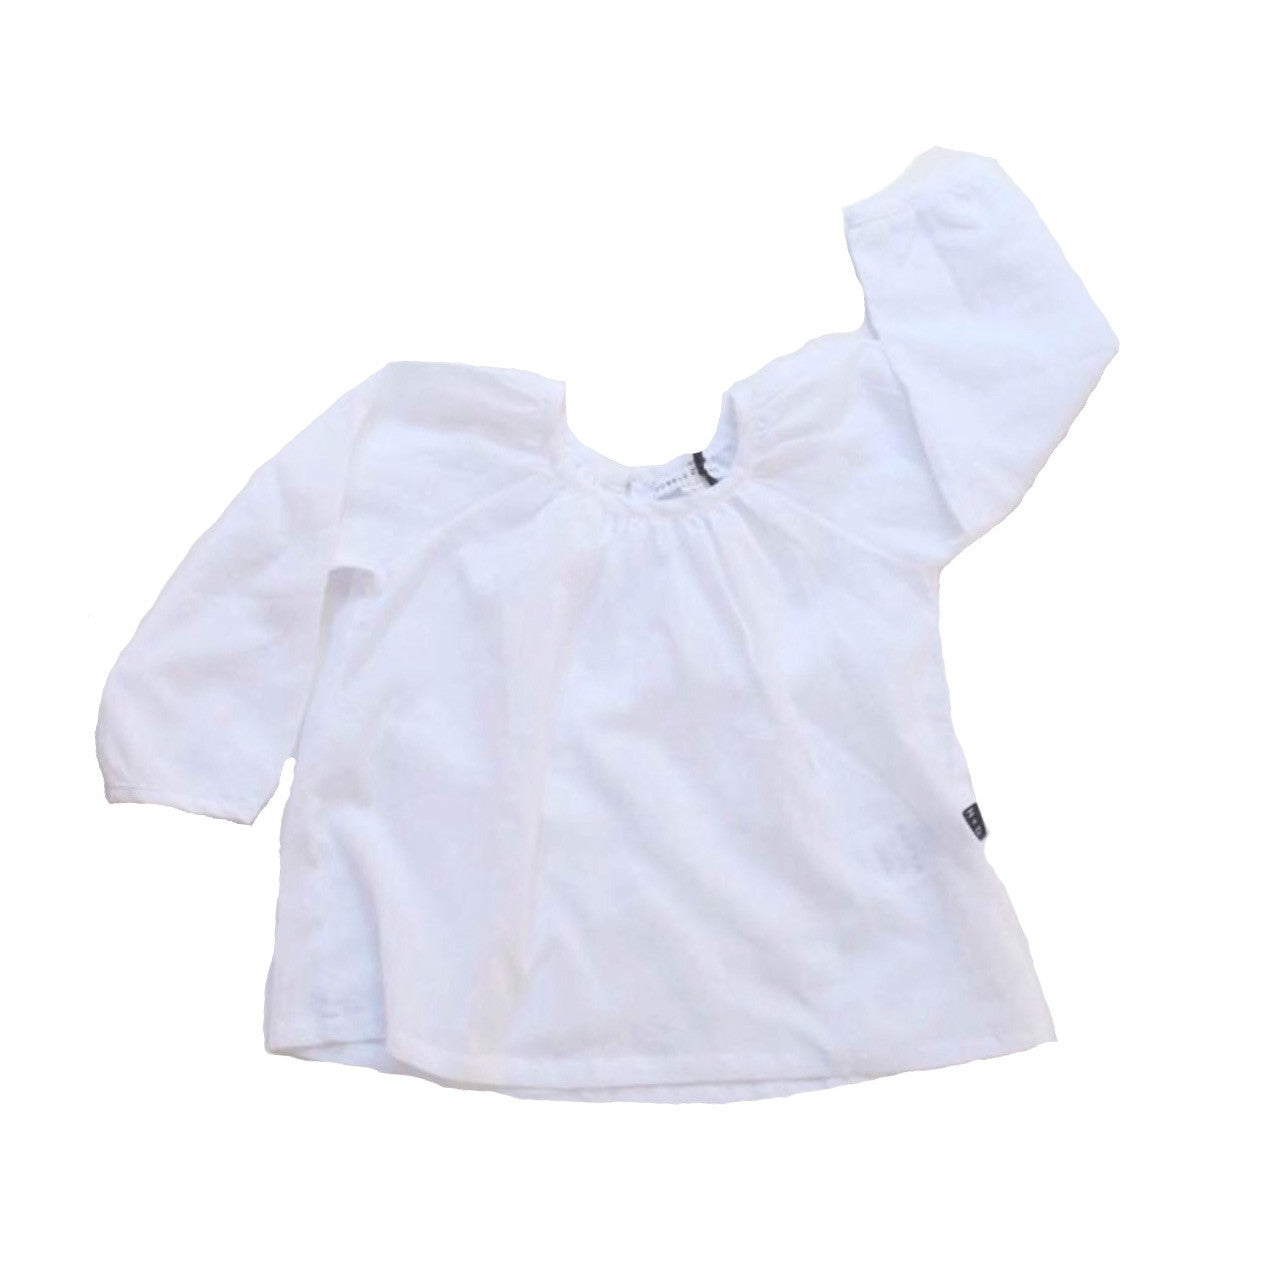 Billowly Smock Top - White